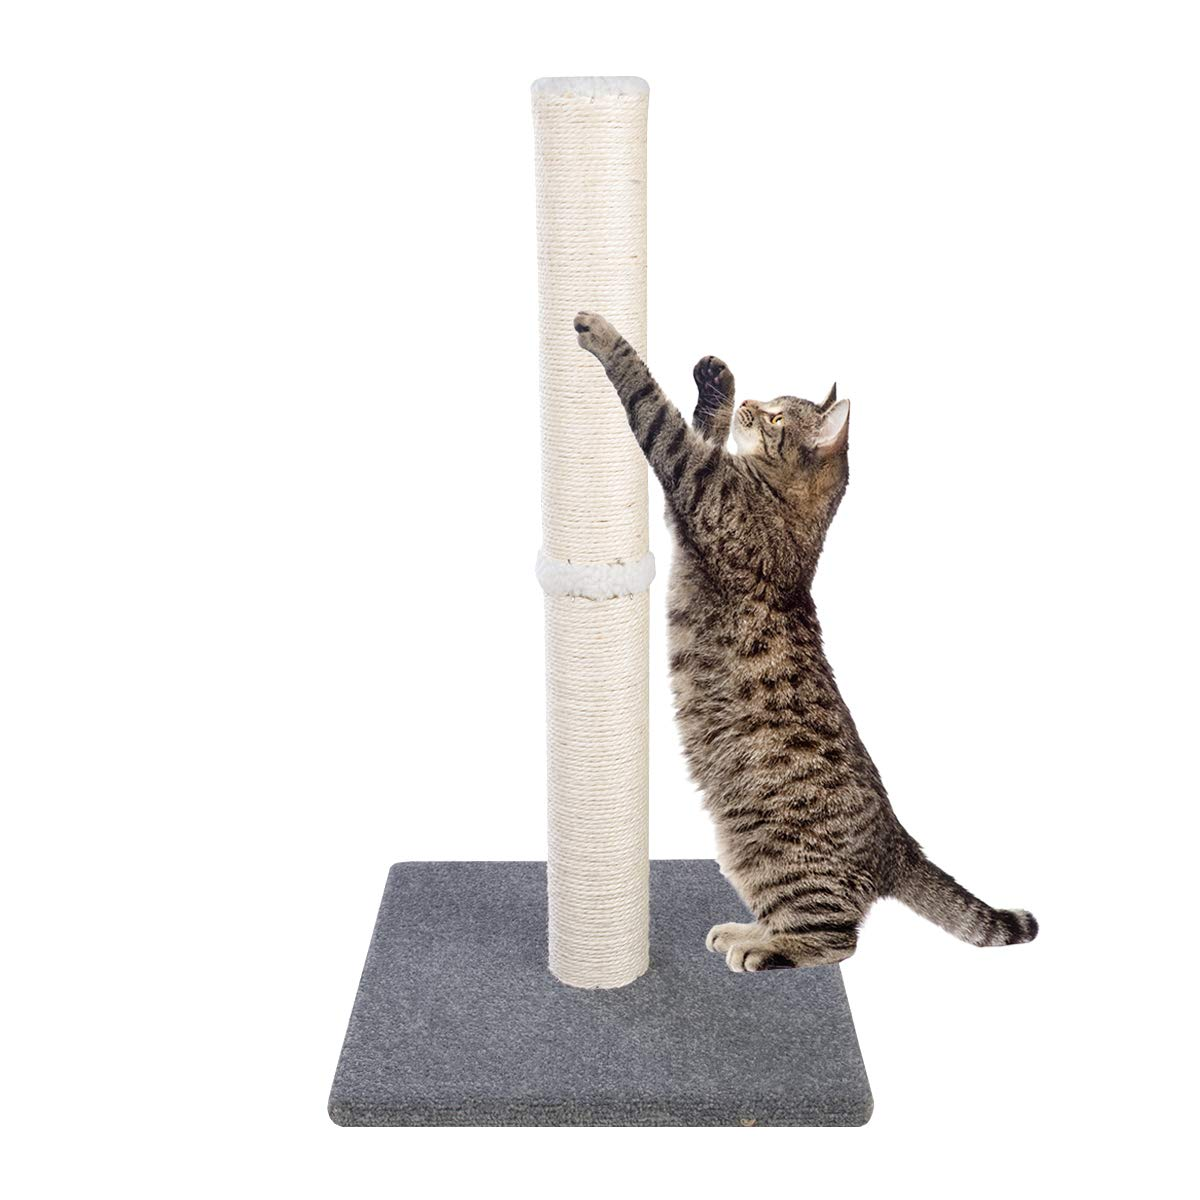 Dimaka 29'' Tall Cat Scratching Post, Claw Scratching Sisal Post for Kittens and Cats,Vertical Scratch [Full Strectch] (Bluish Grey) by Dimaka